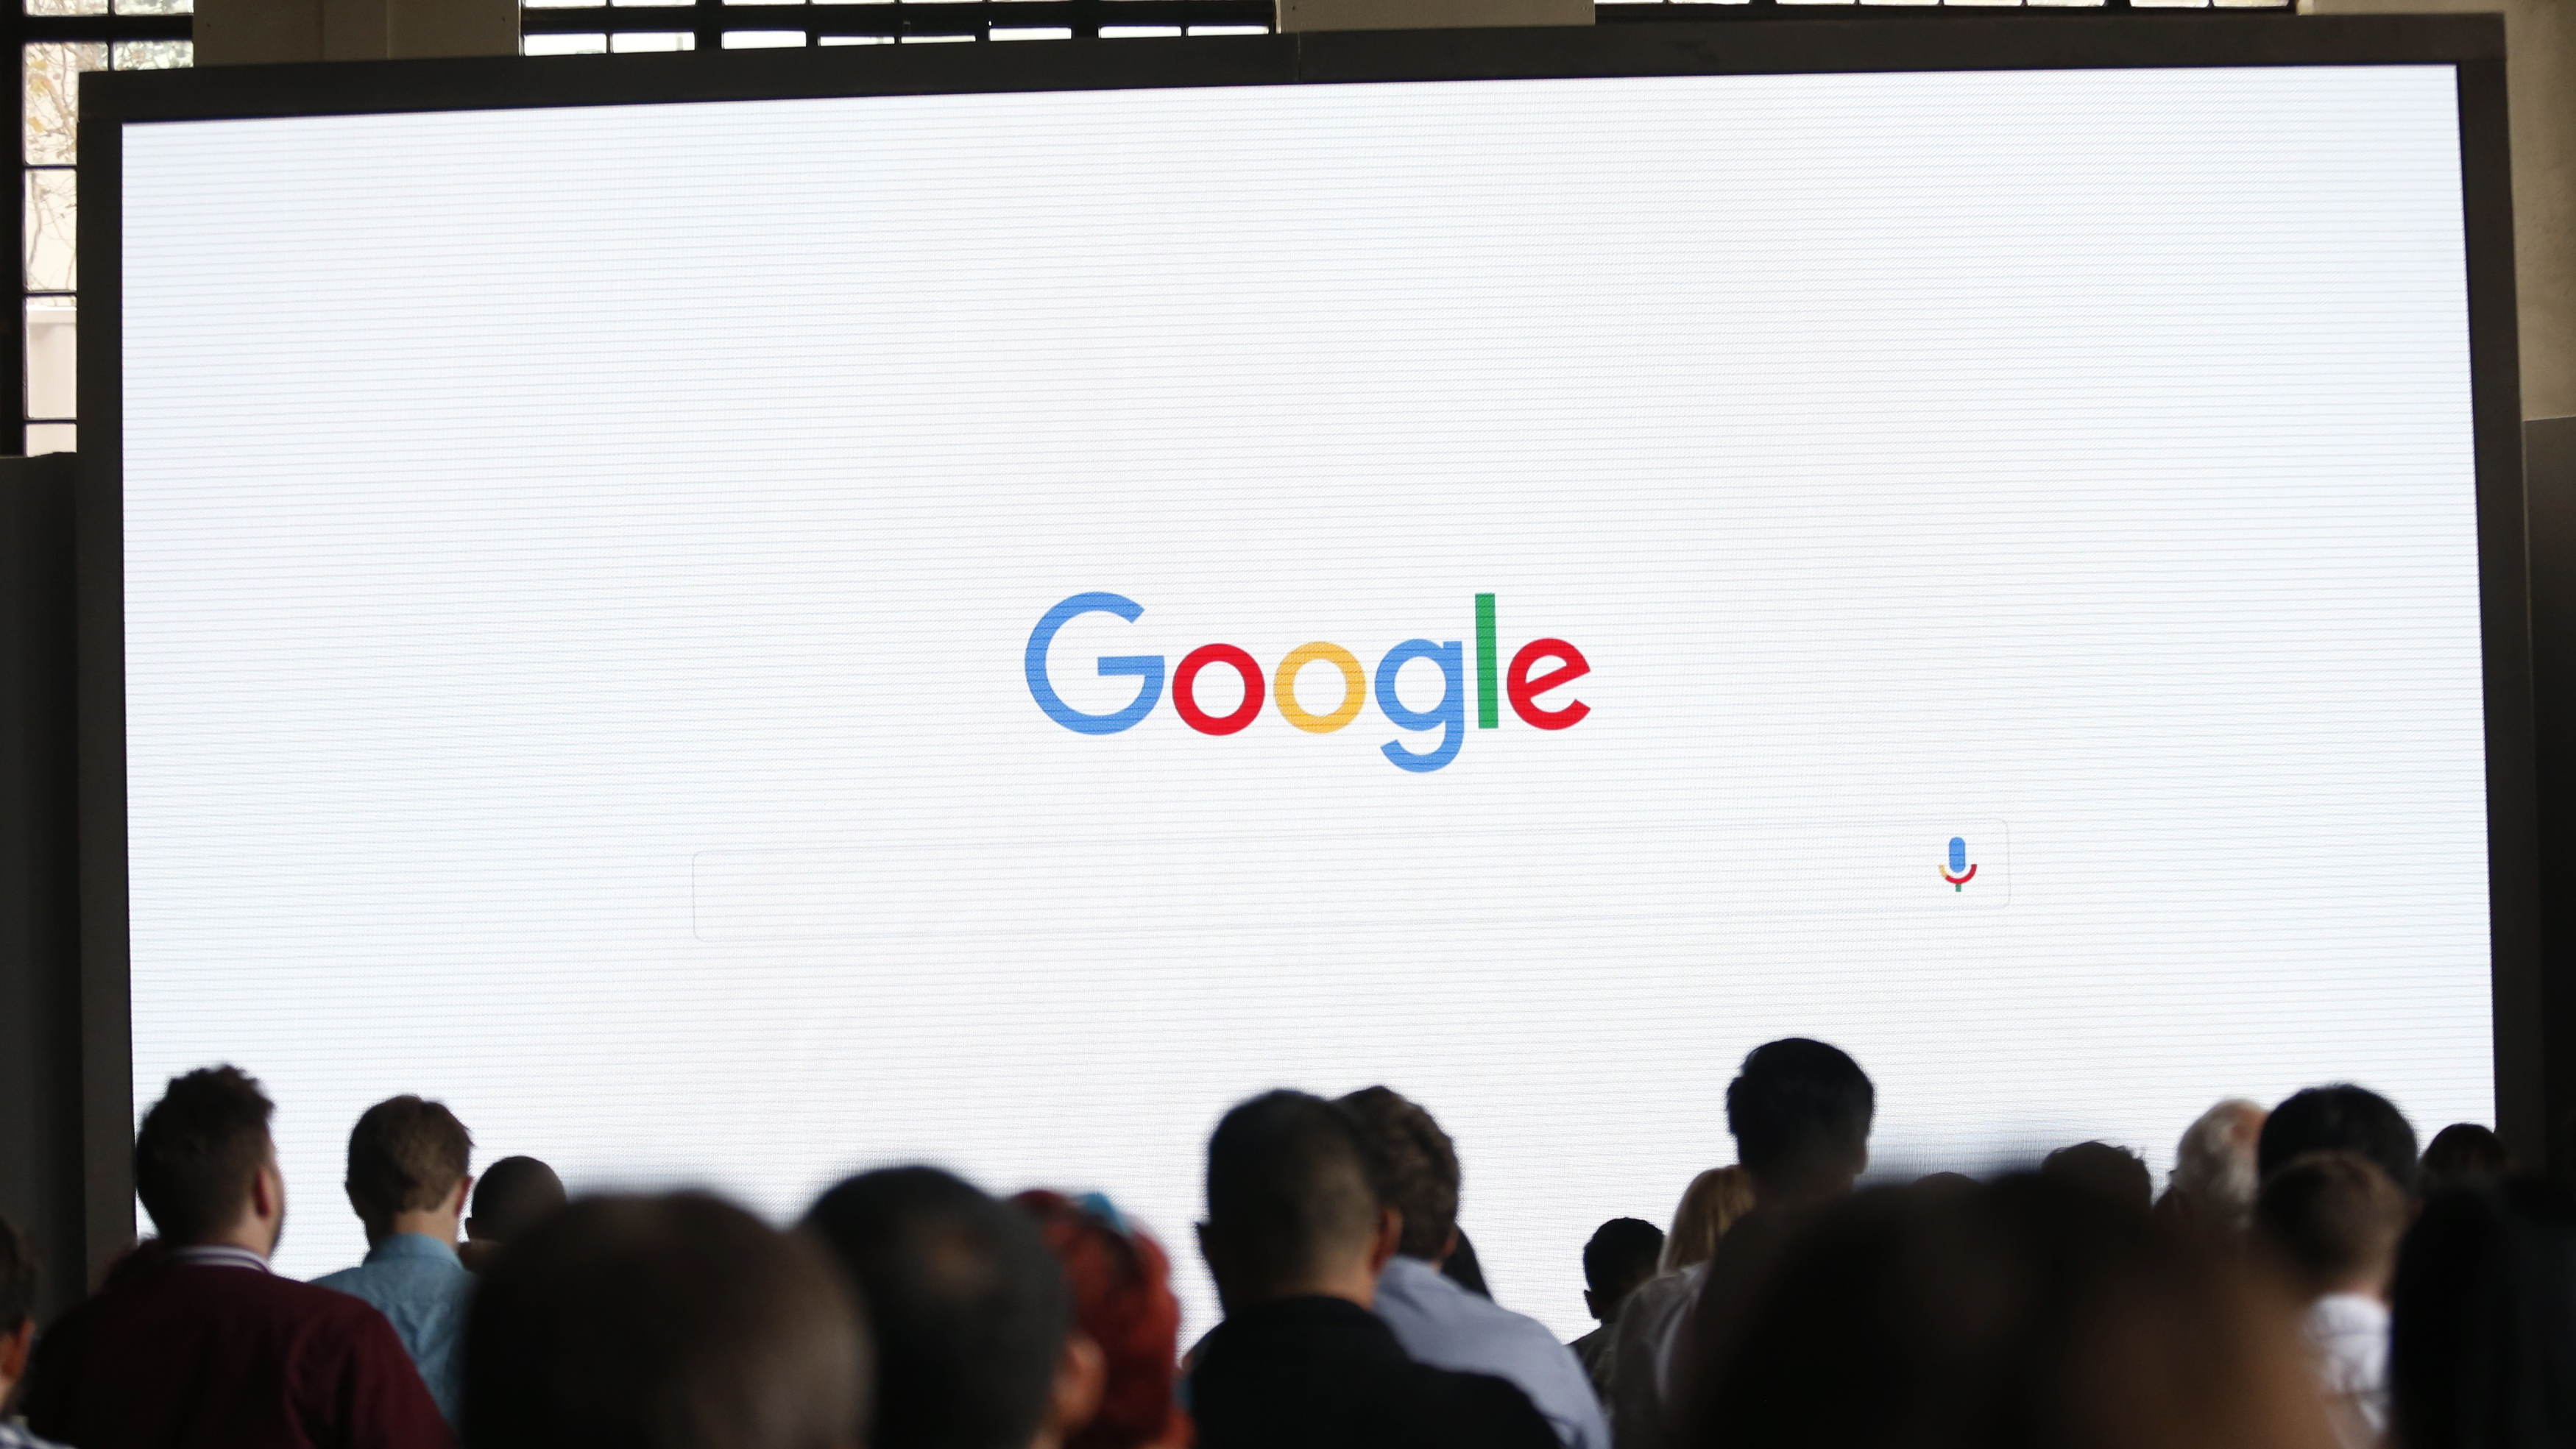 Attendees wait for the program to begin during the presentation of new Google hardware in San Francisco...